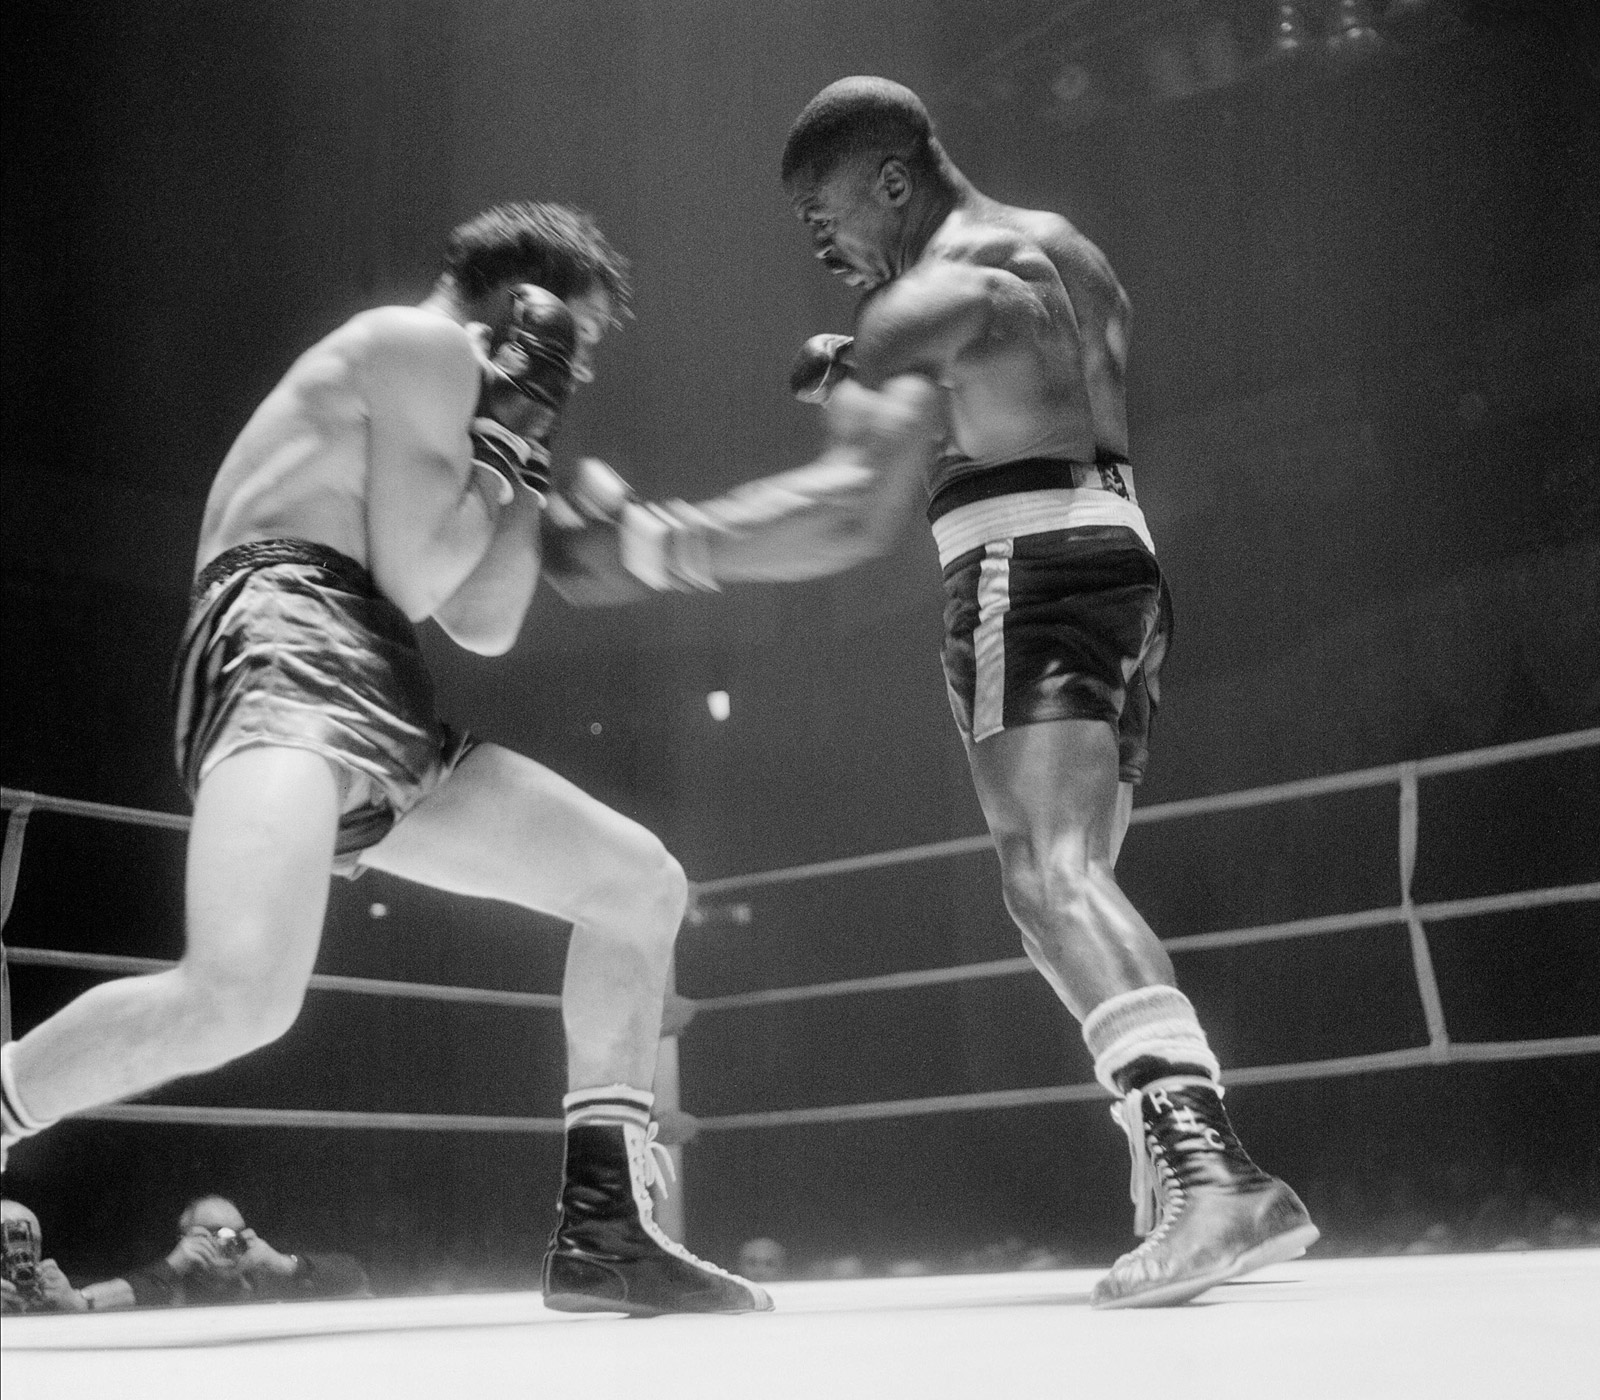 Rubin 'Hurricane' Carter (right) lands a punch on Fabio Bettini of Italy during their international middleweight match in Paris on Feb. 22, 1965. Carter beat Bettini by knockout in the 10th round